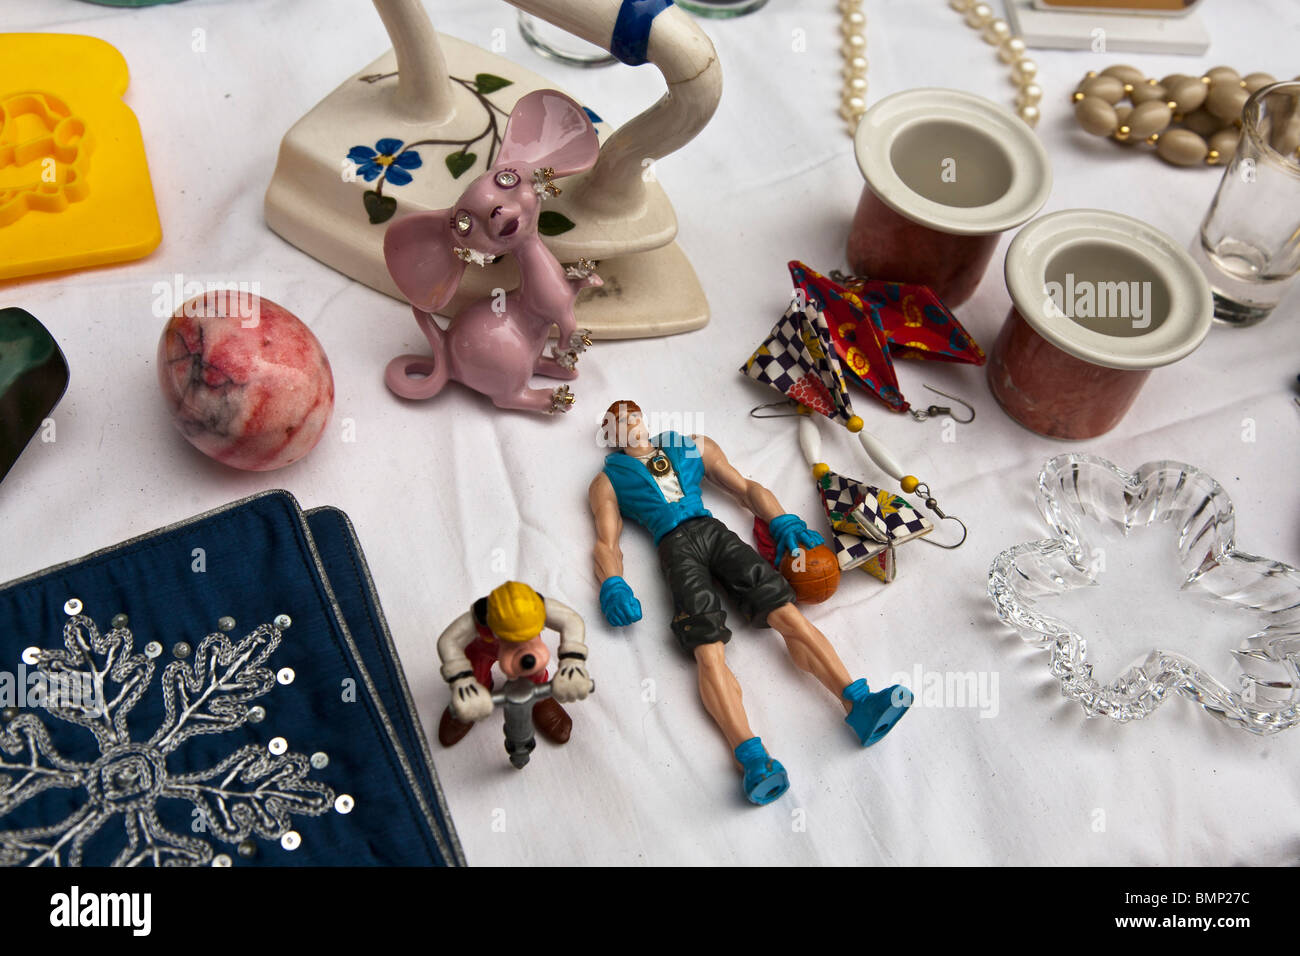 kitsch treasures including marble egg origami earrings & pink mouse with rhinestone eyes displayed for sale - Stock Image